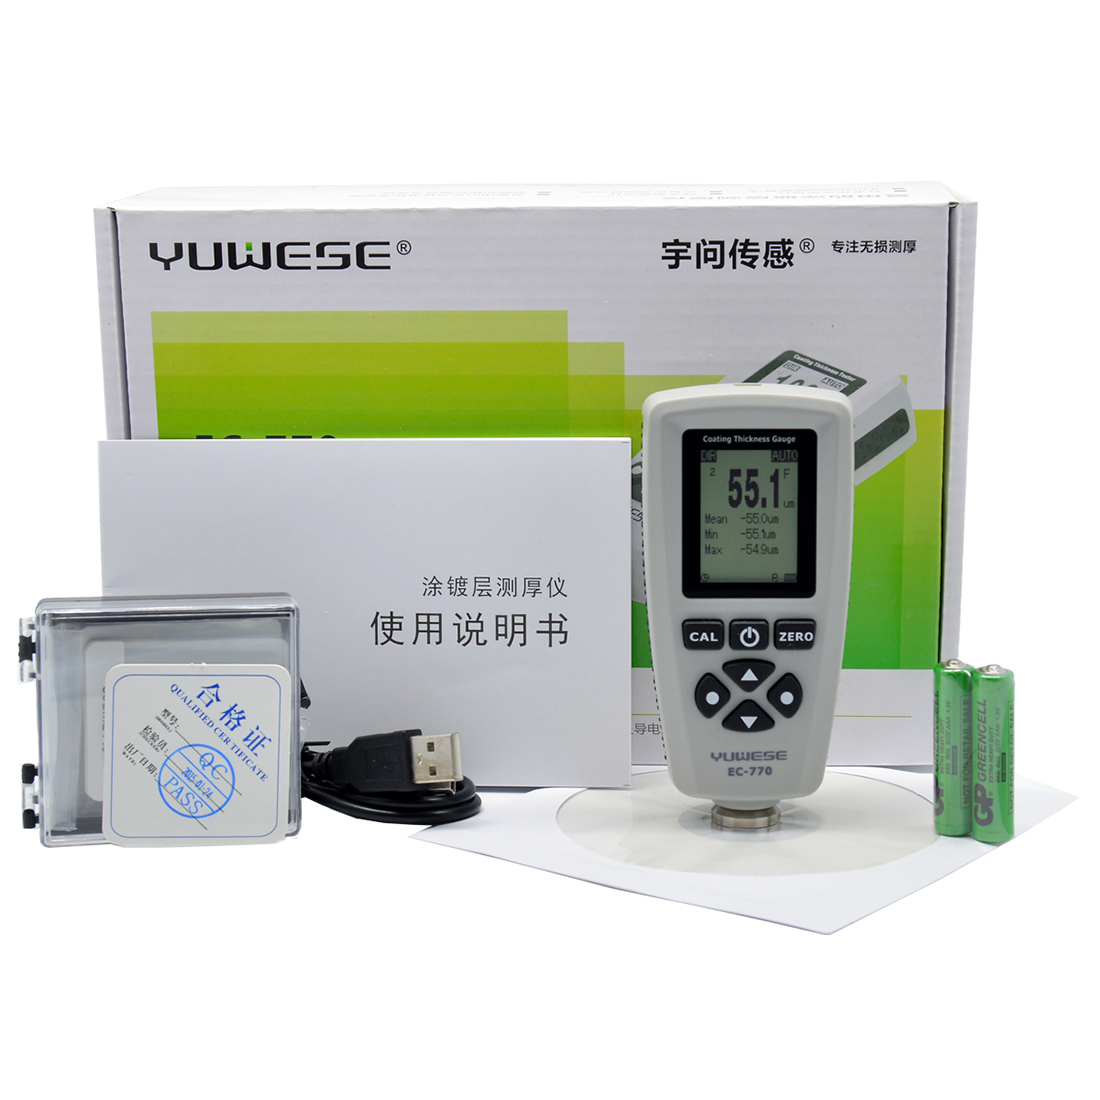 YOWEXA EC 770 paint coating thickness gauge Meter for 0 1300um painting thickness on iron non